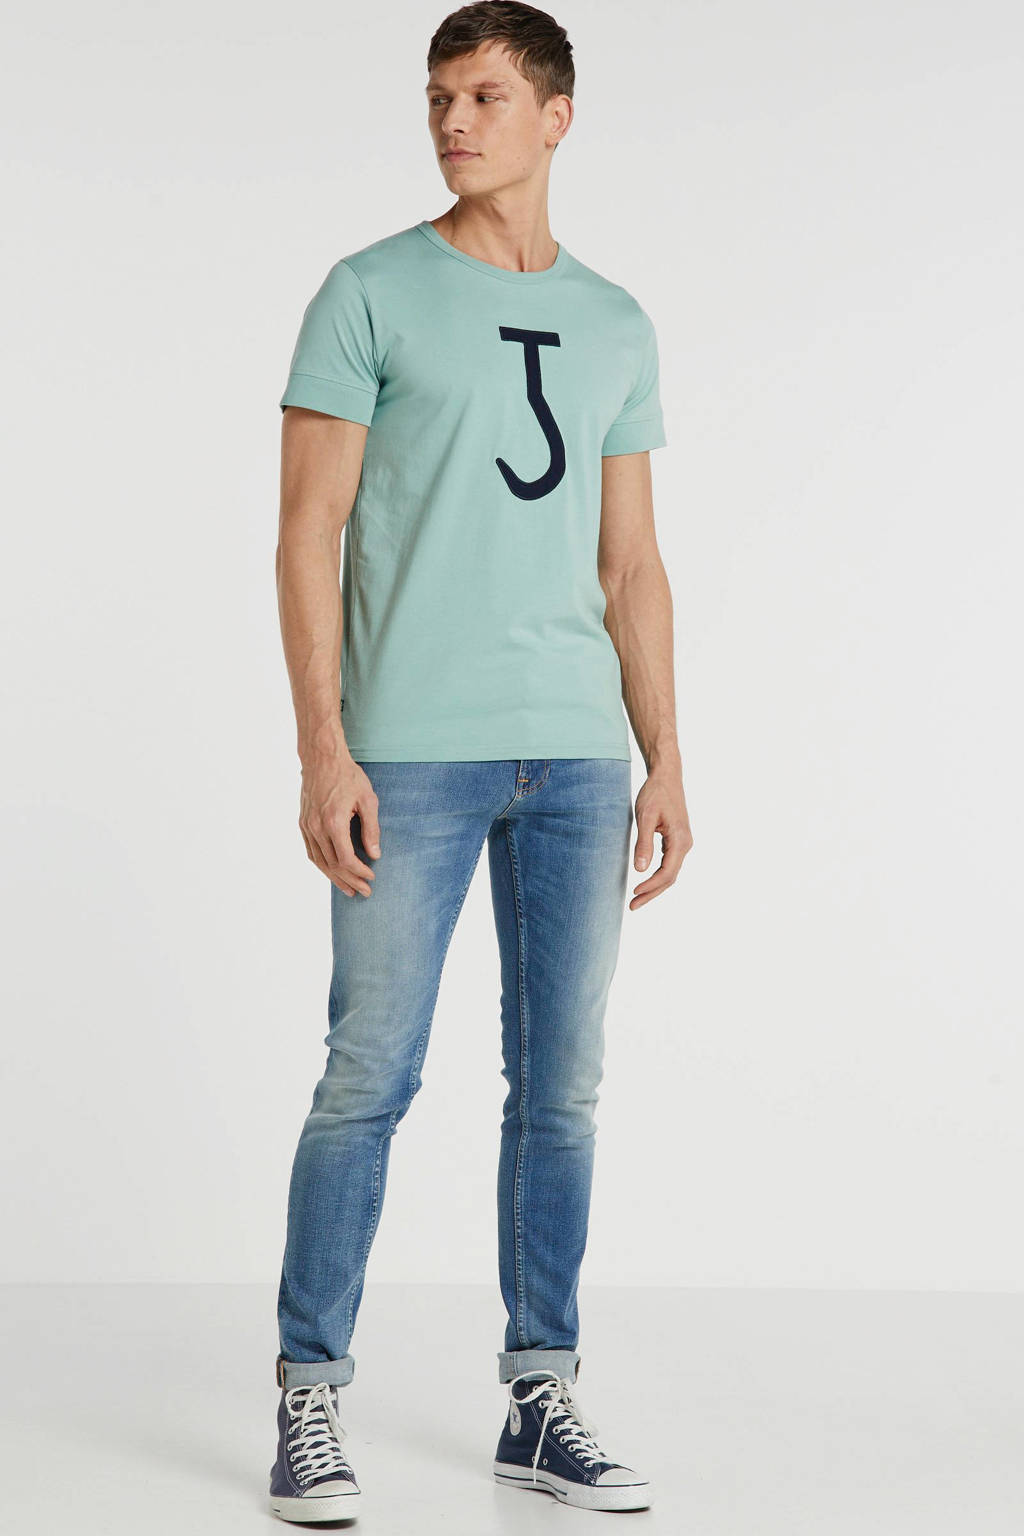 Nudie Jeans slim fit jeans Tight Terry summer dust, Summer Dust